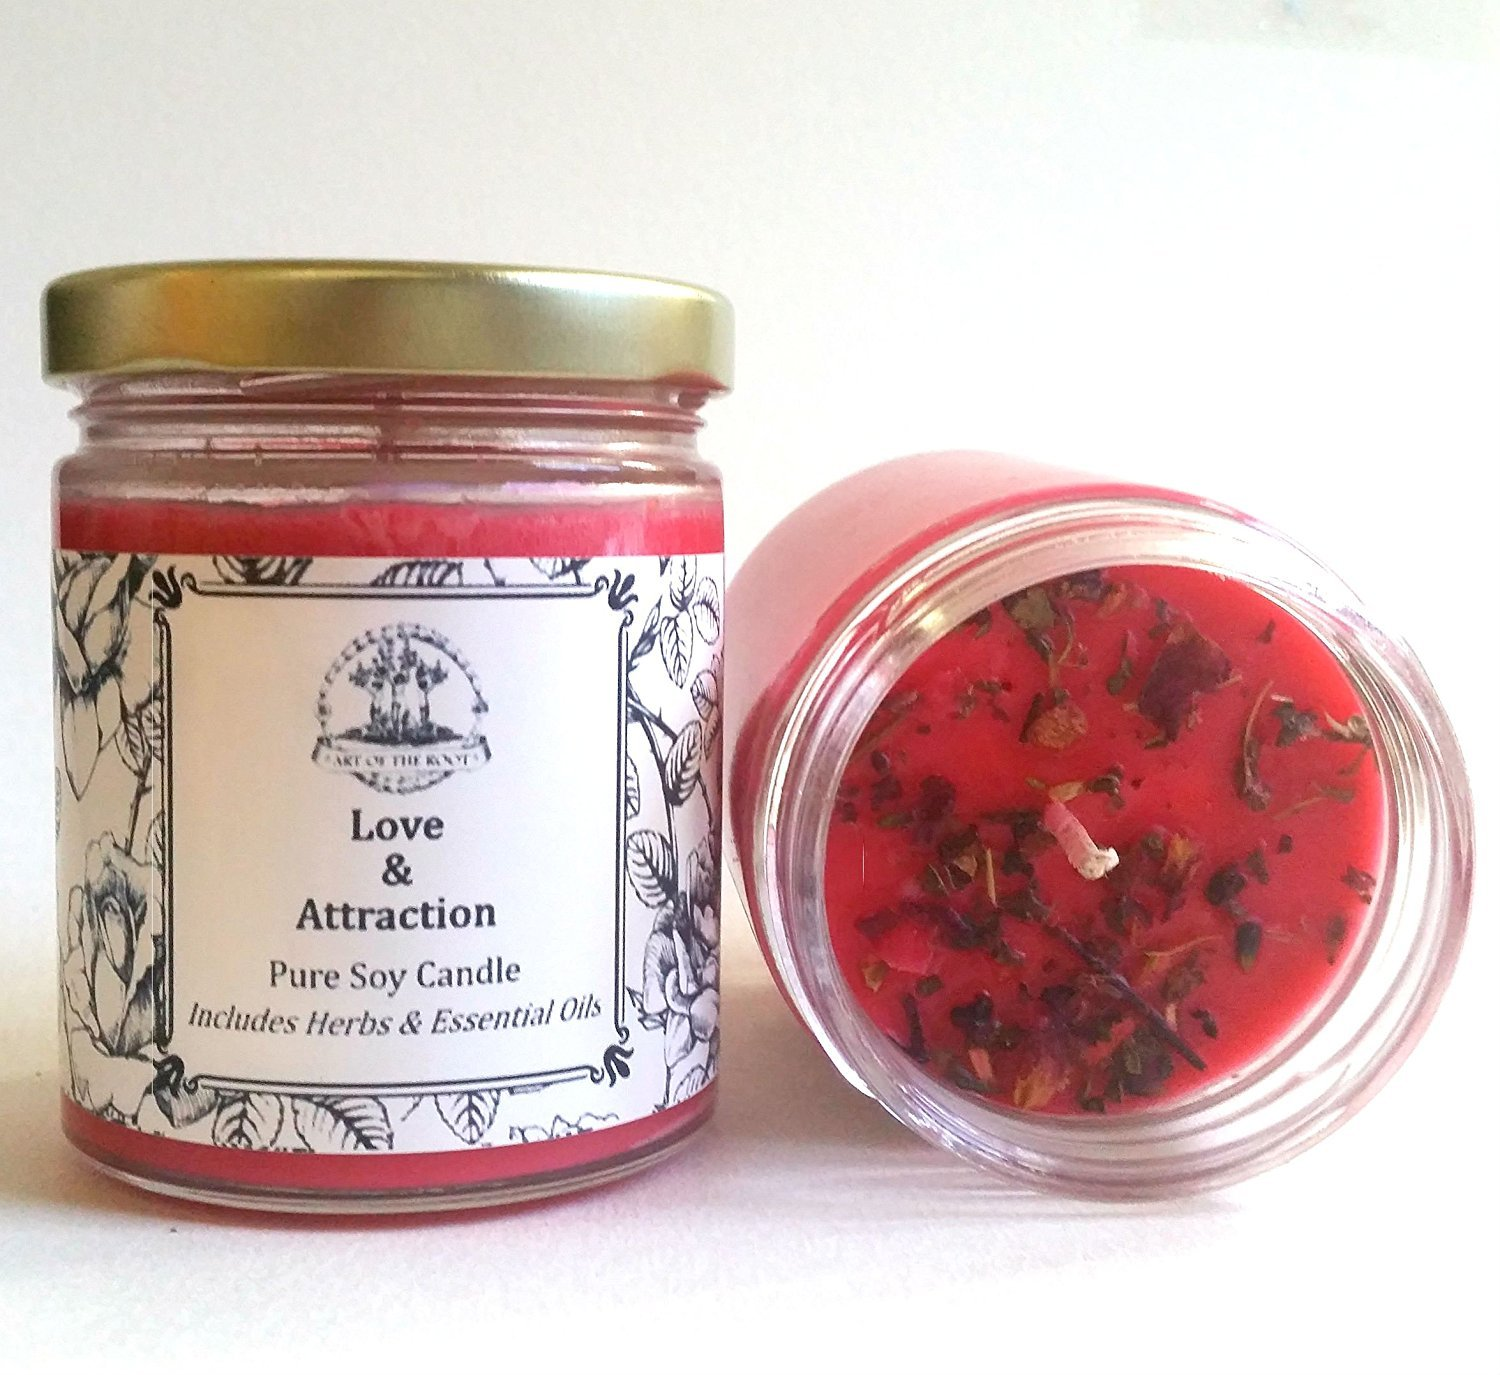 Love & Attraction 6 oz Soy Spell Candle for Romance & Relationships Wiccan Pagan Hoodoo